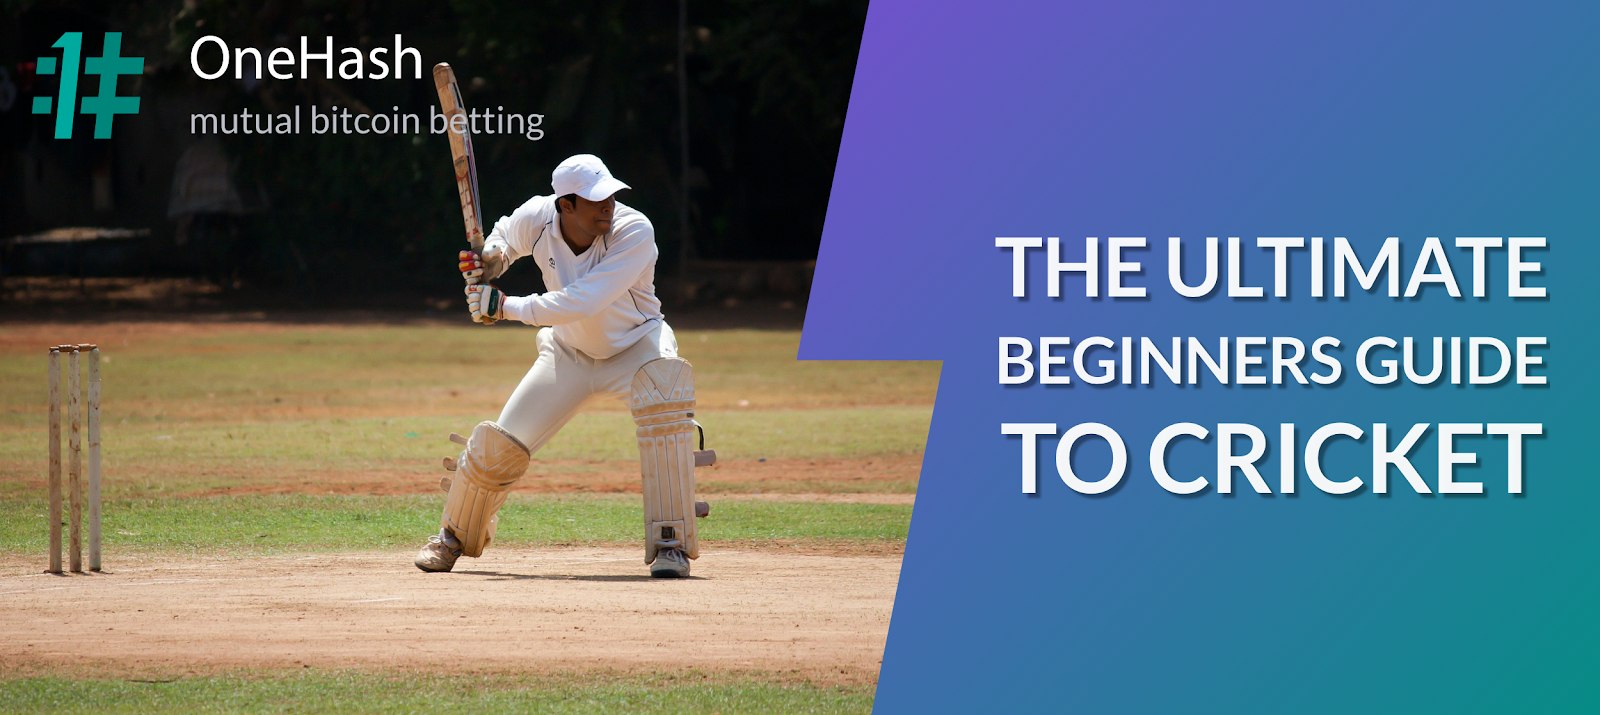 The Ultimate Beginners Guide To Cricket Onehash